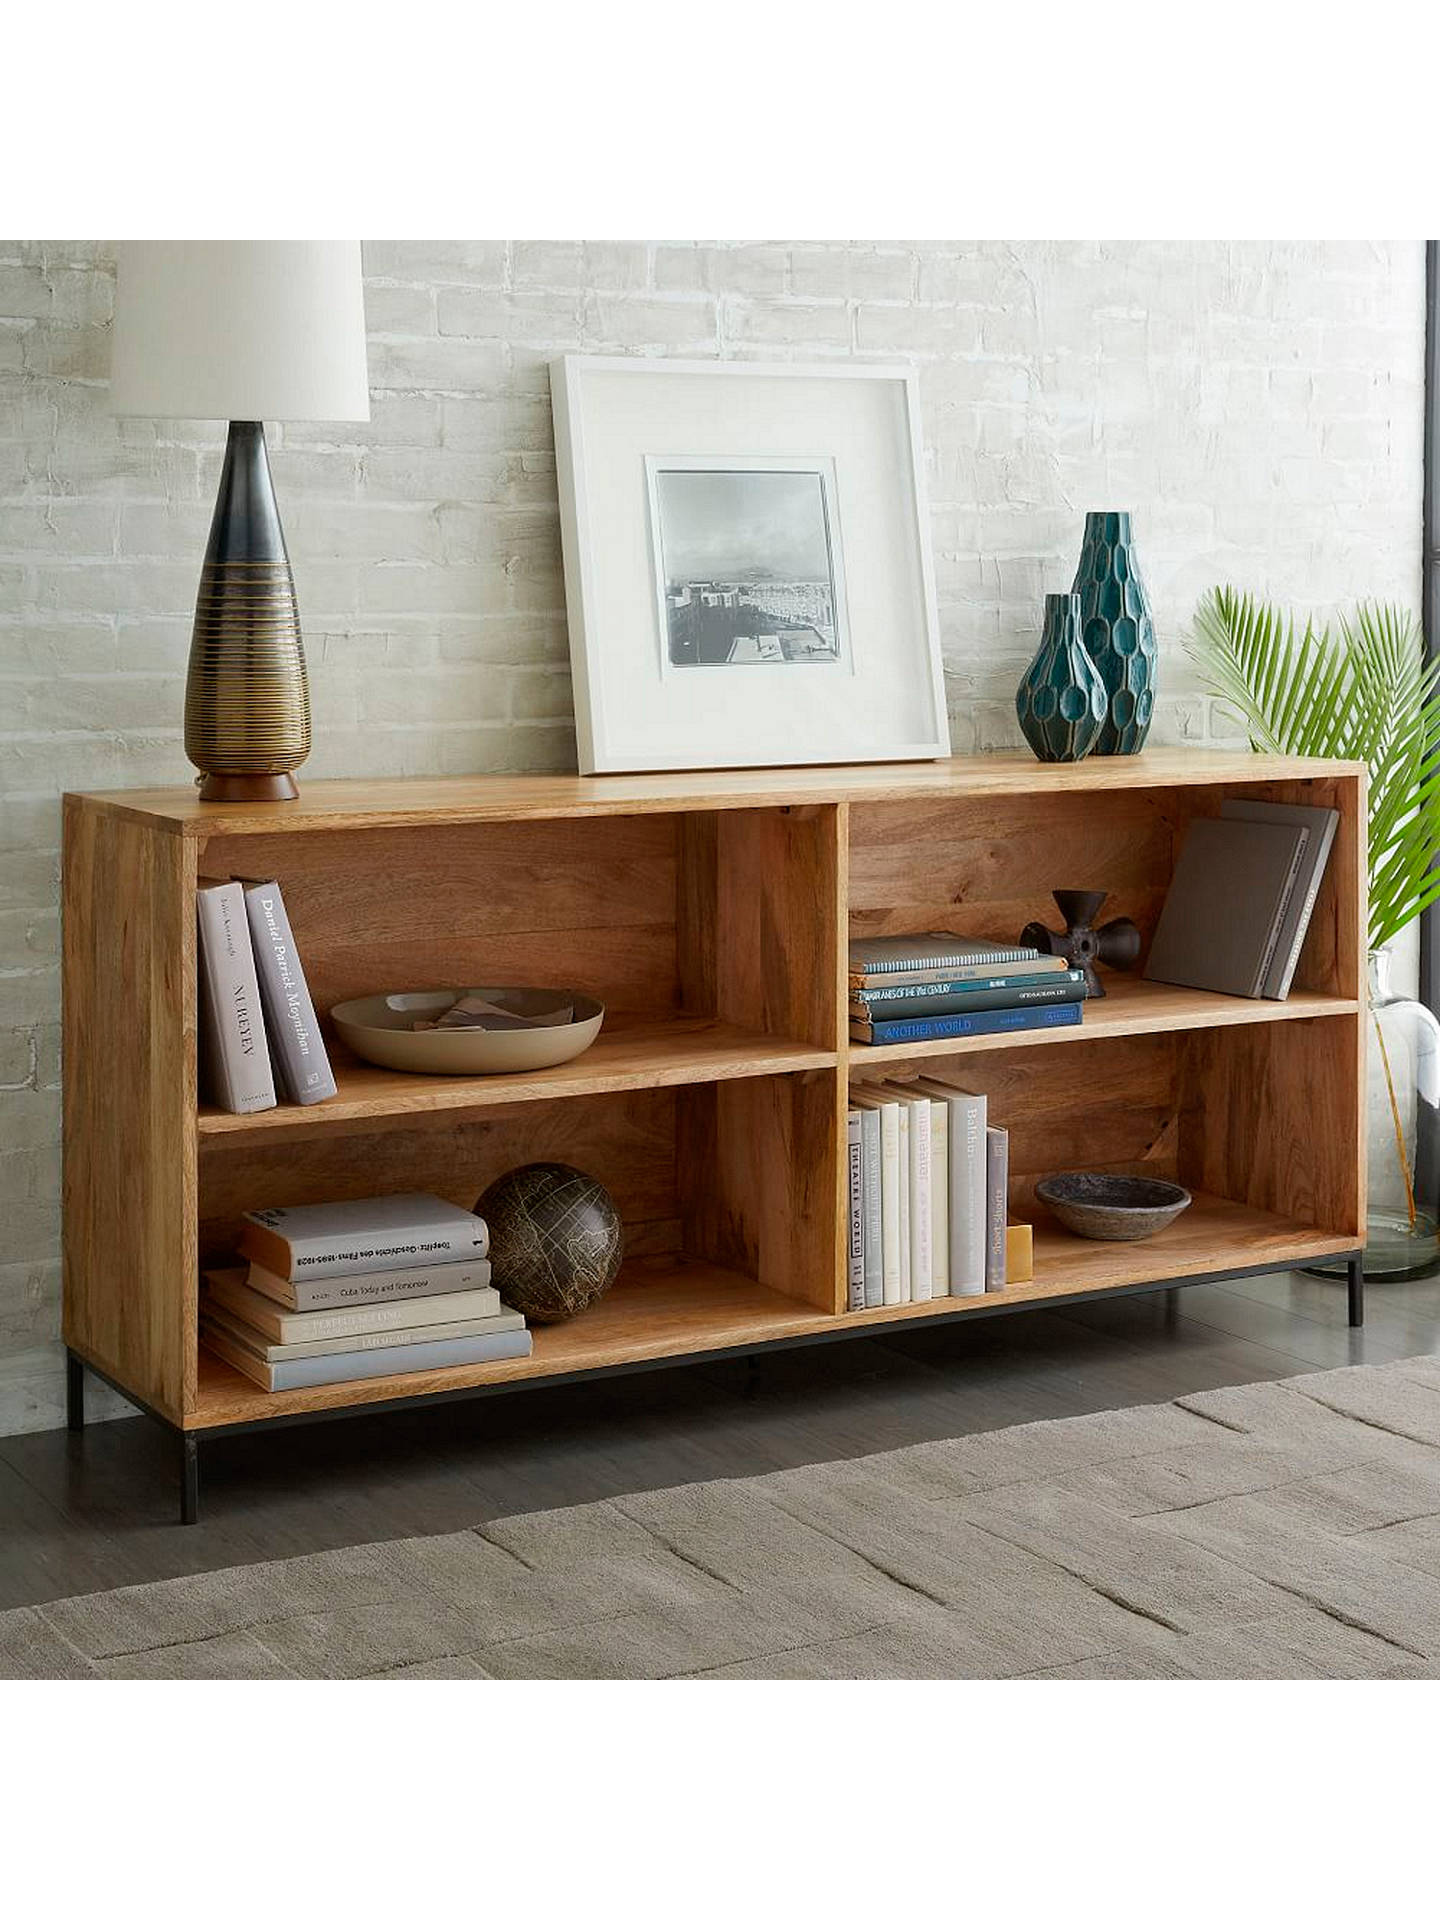 Buywest elm Industrial Modular Bookcase Online at johnlewis.com